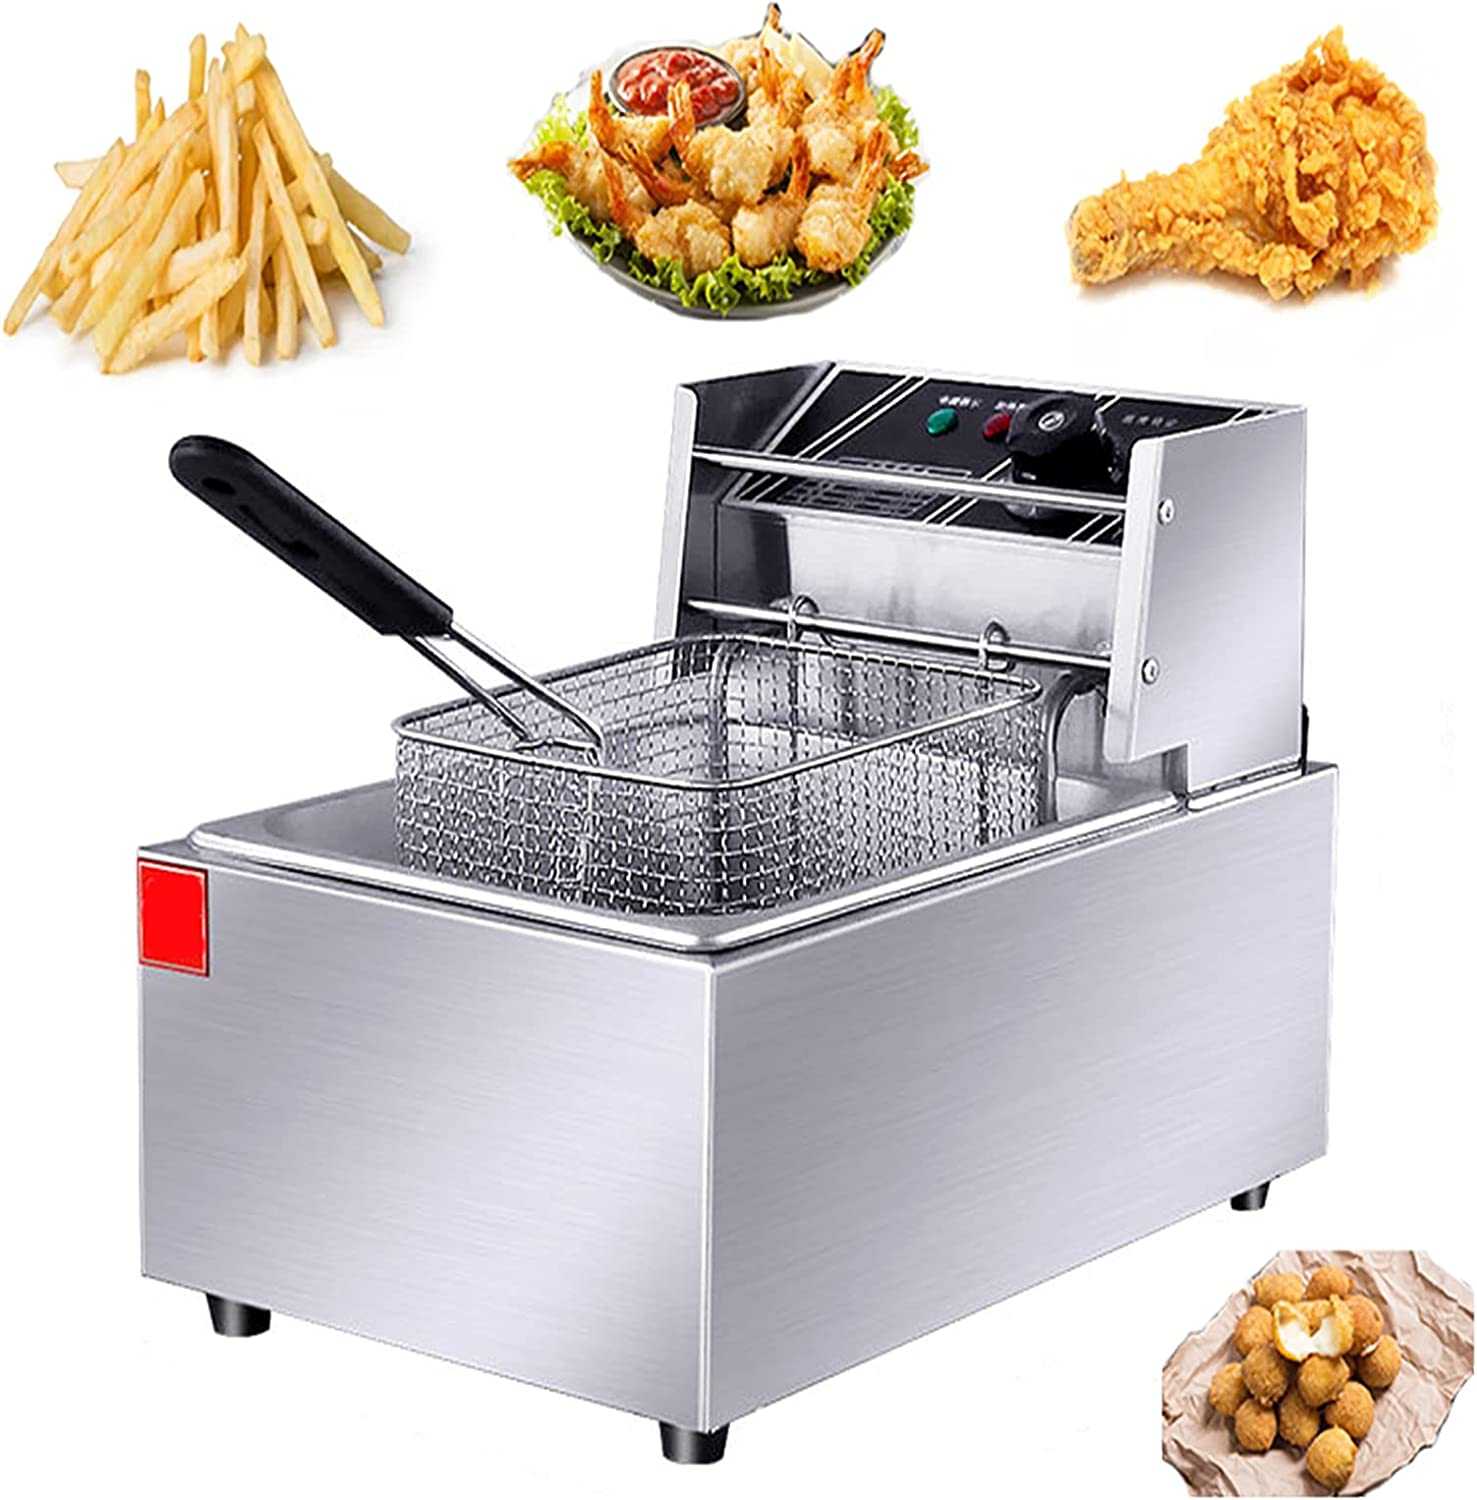 NEWTRY Commercial Deep Fryer Don't miss the campaign Special Campaign 6L 2500W Single-Cylinder Countertop